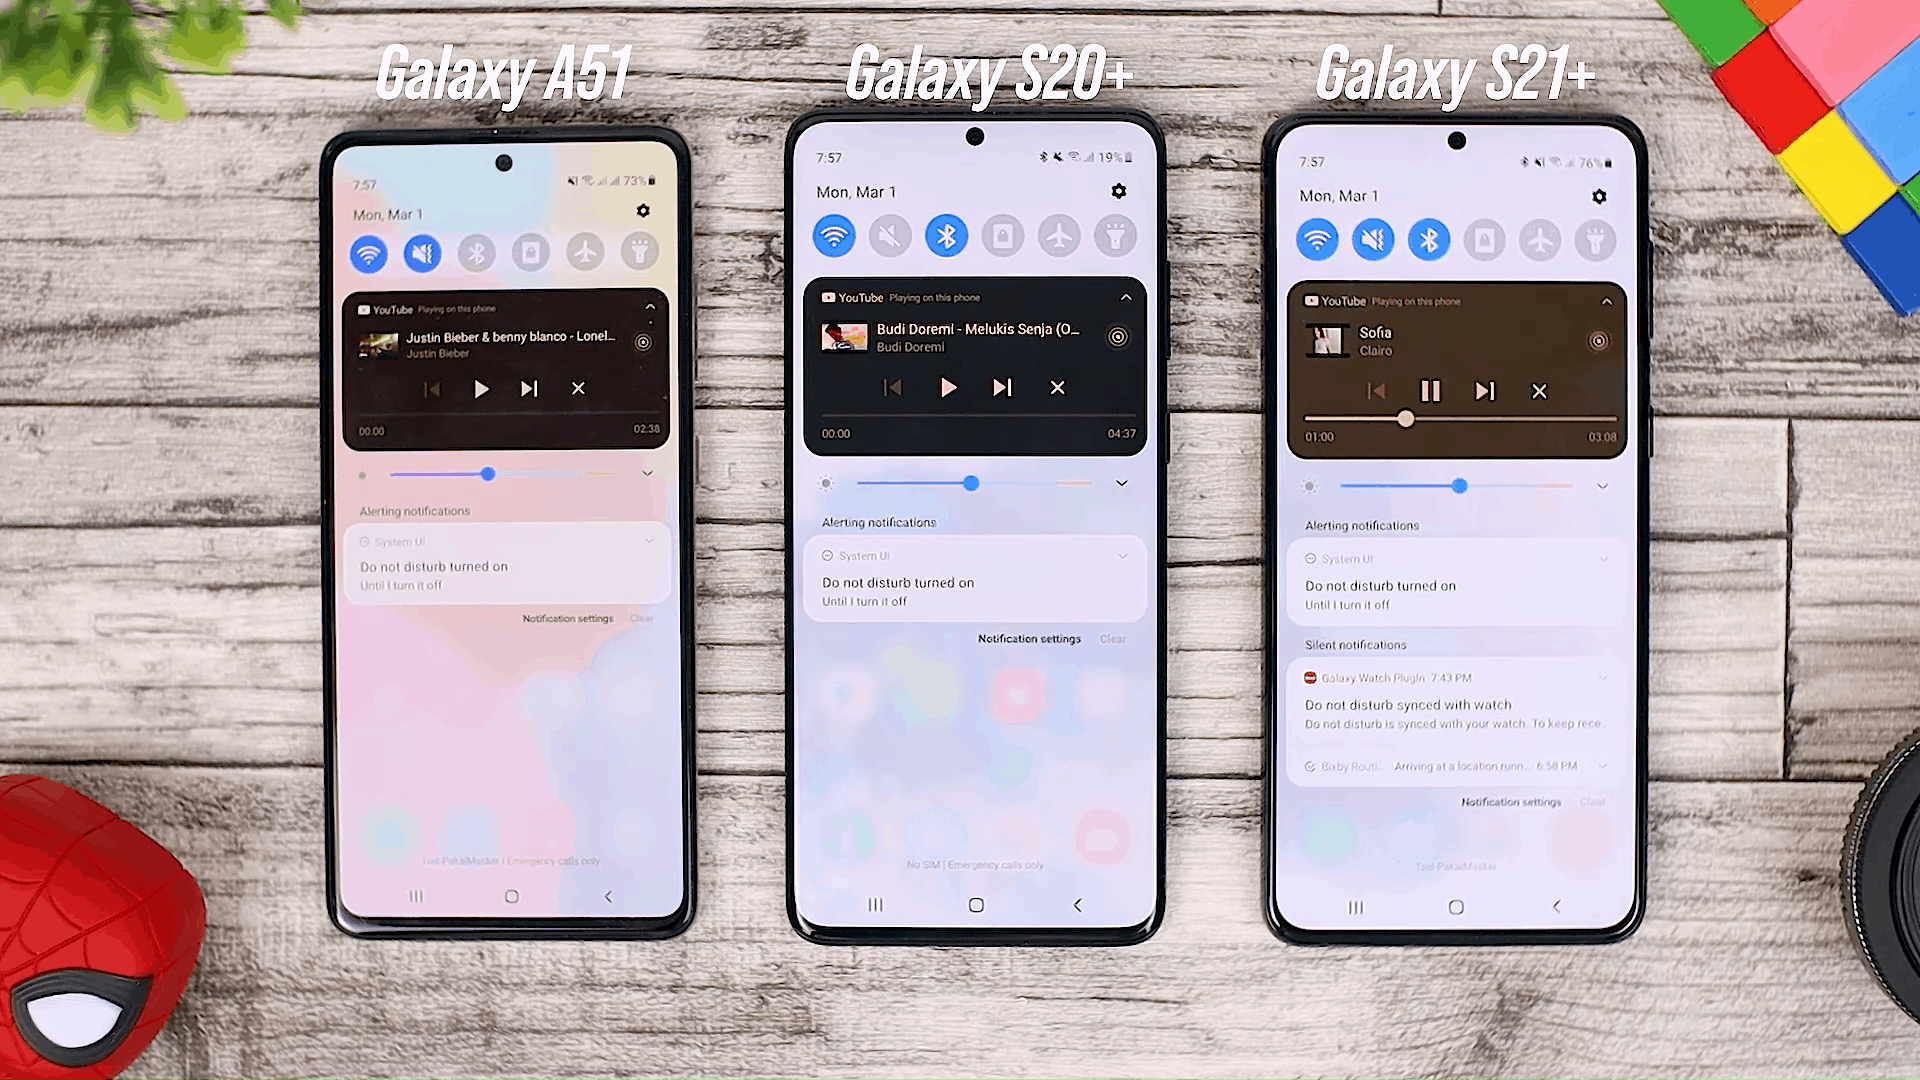 New Feature in Media Control - Fitur One UI 3.0 di Galaxy A51 dan Perbandingannya dengan Galaxy S20+ dan One UI 3.1 di Galaxy S21+